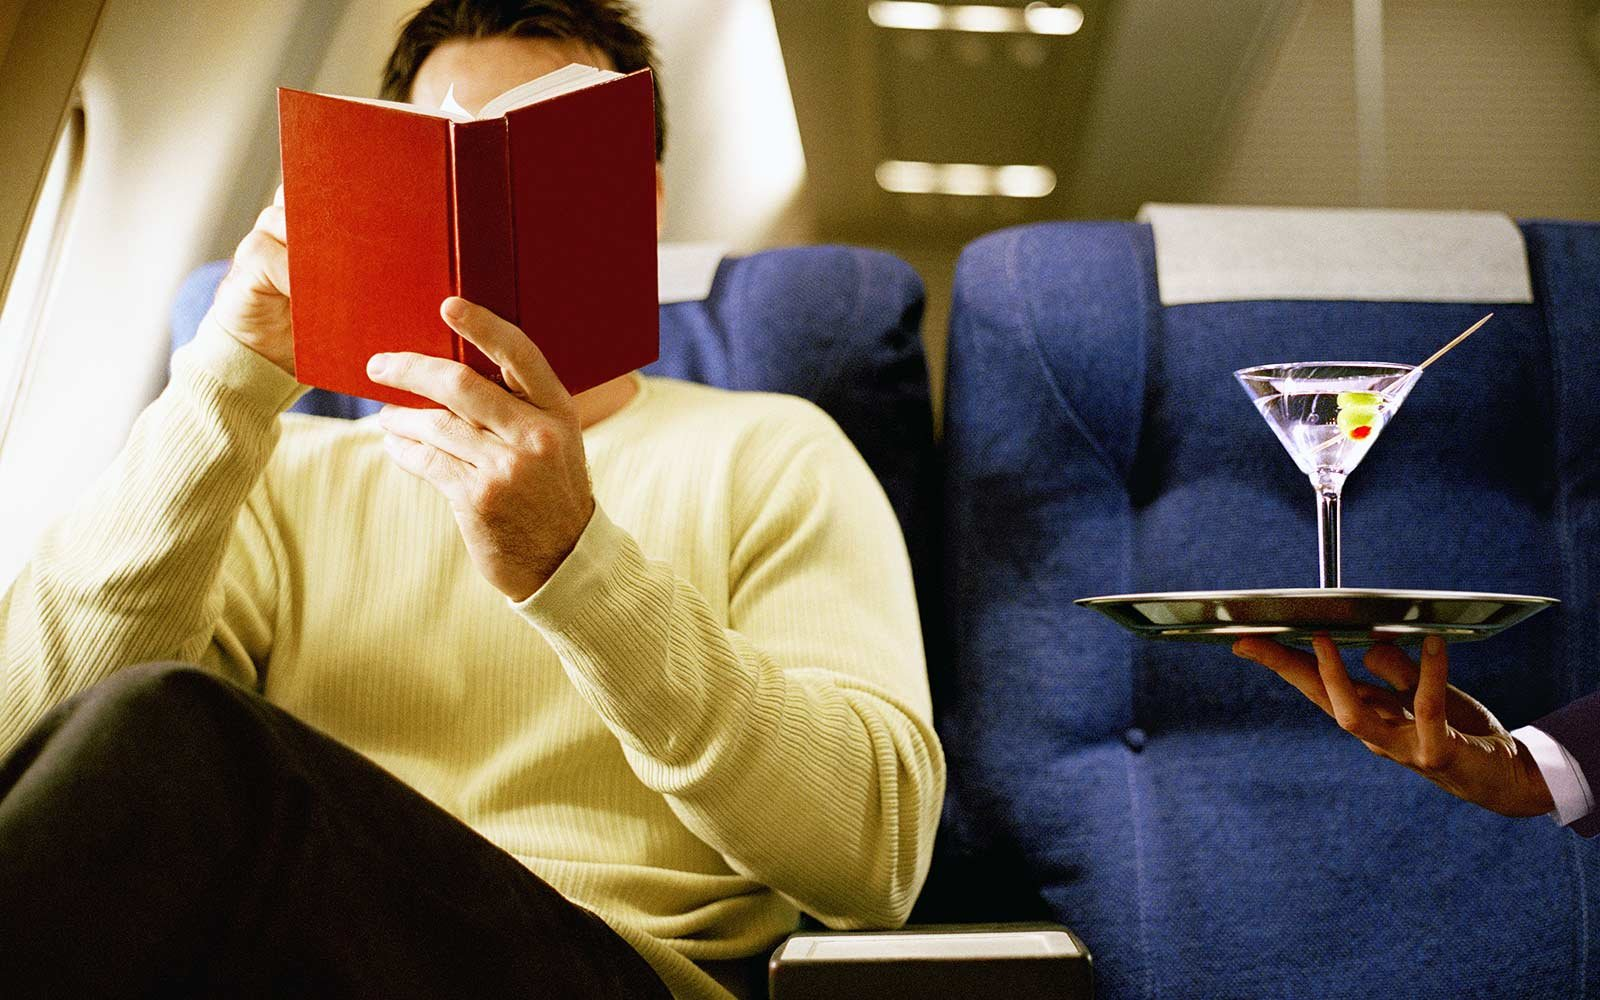 How to Become a Frequent Flier Without Spending a Lot of Money